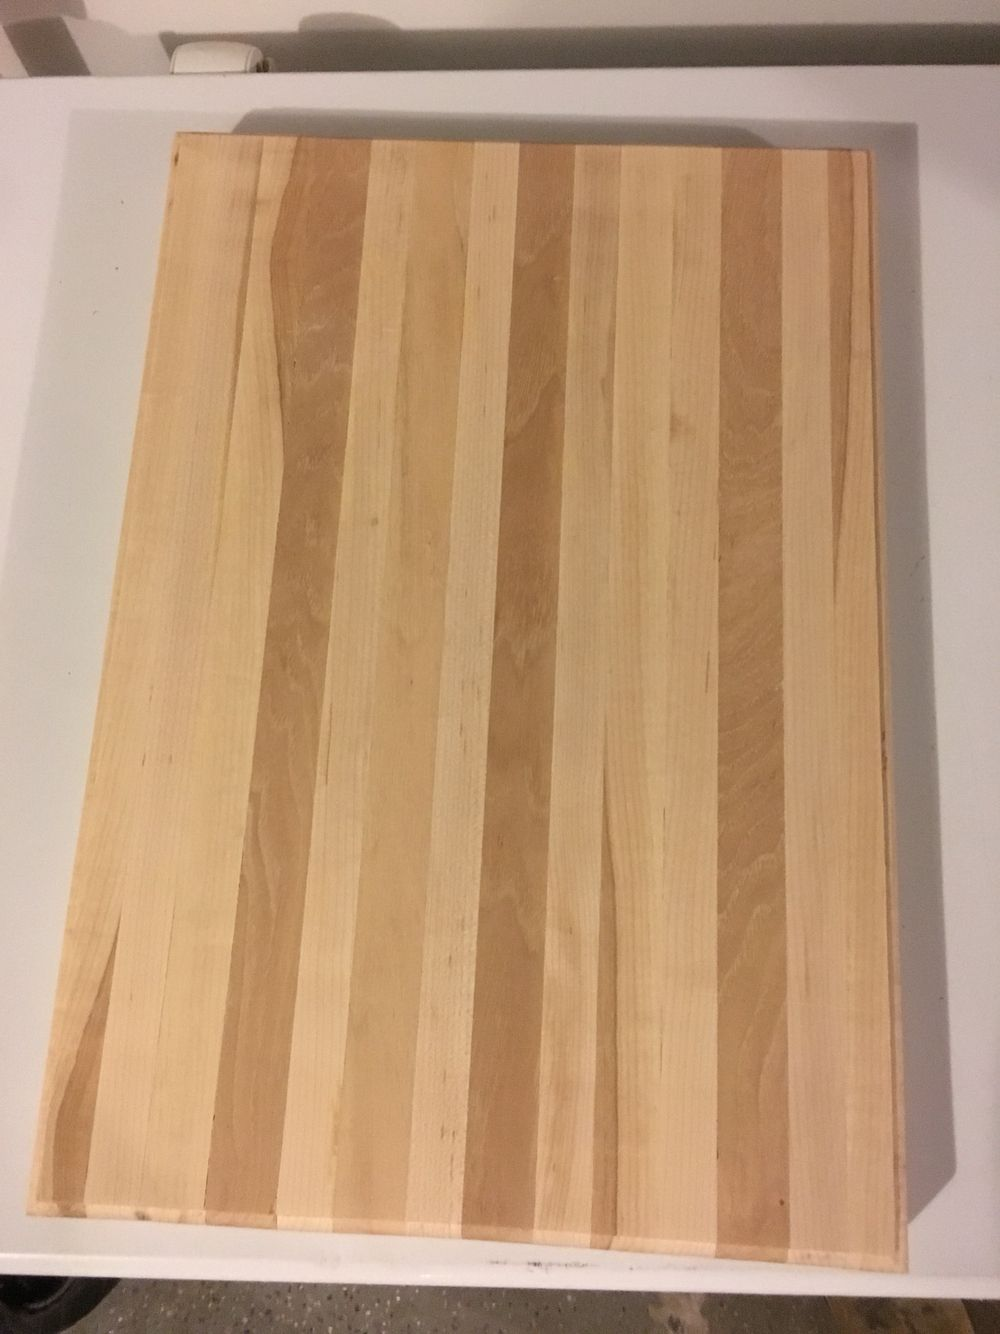 Hickory maple chopping block